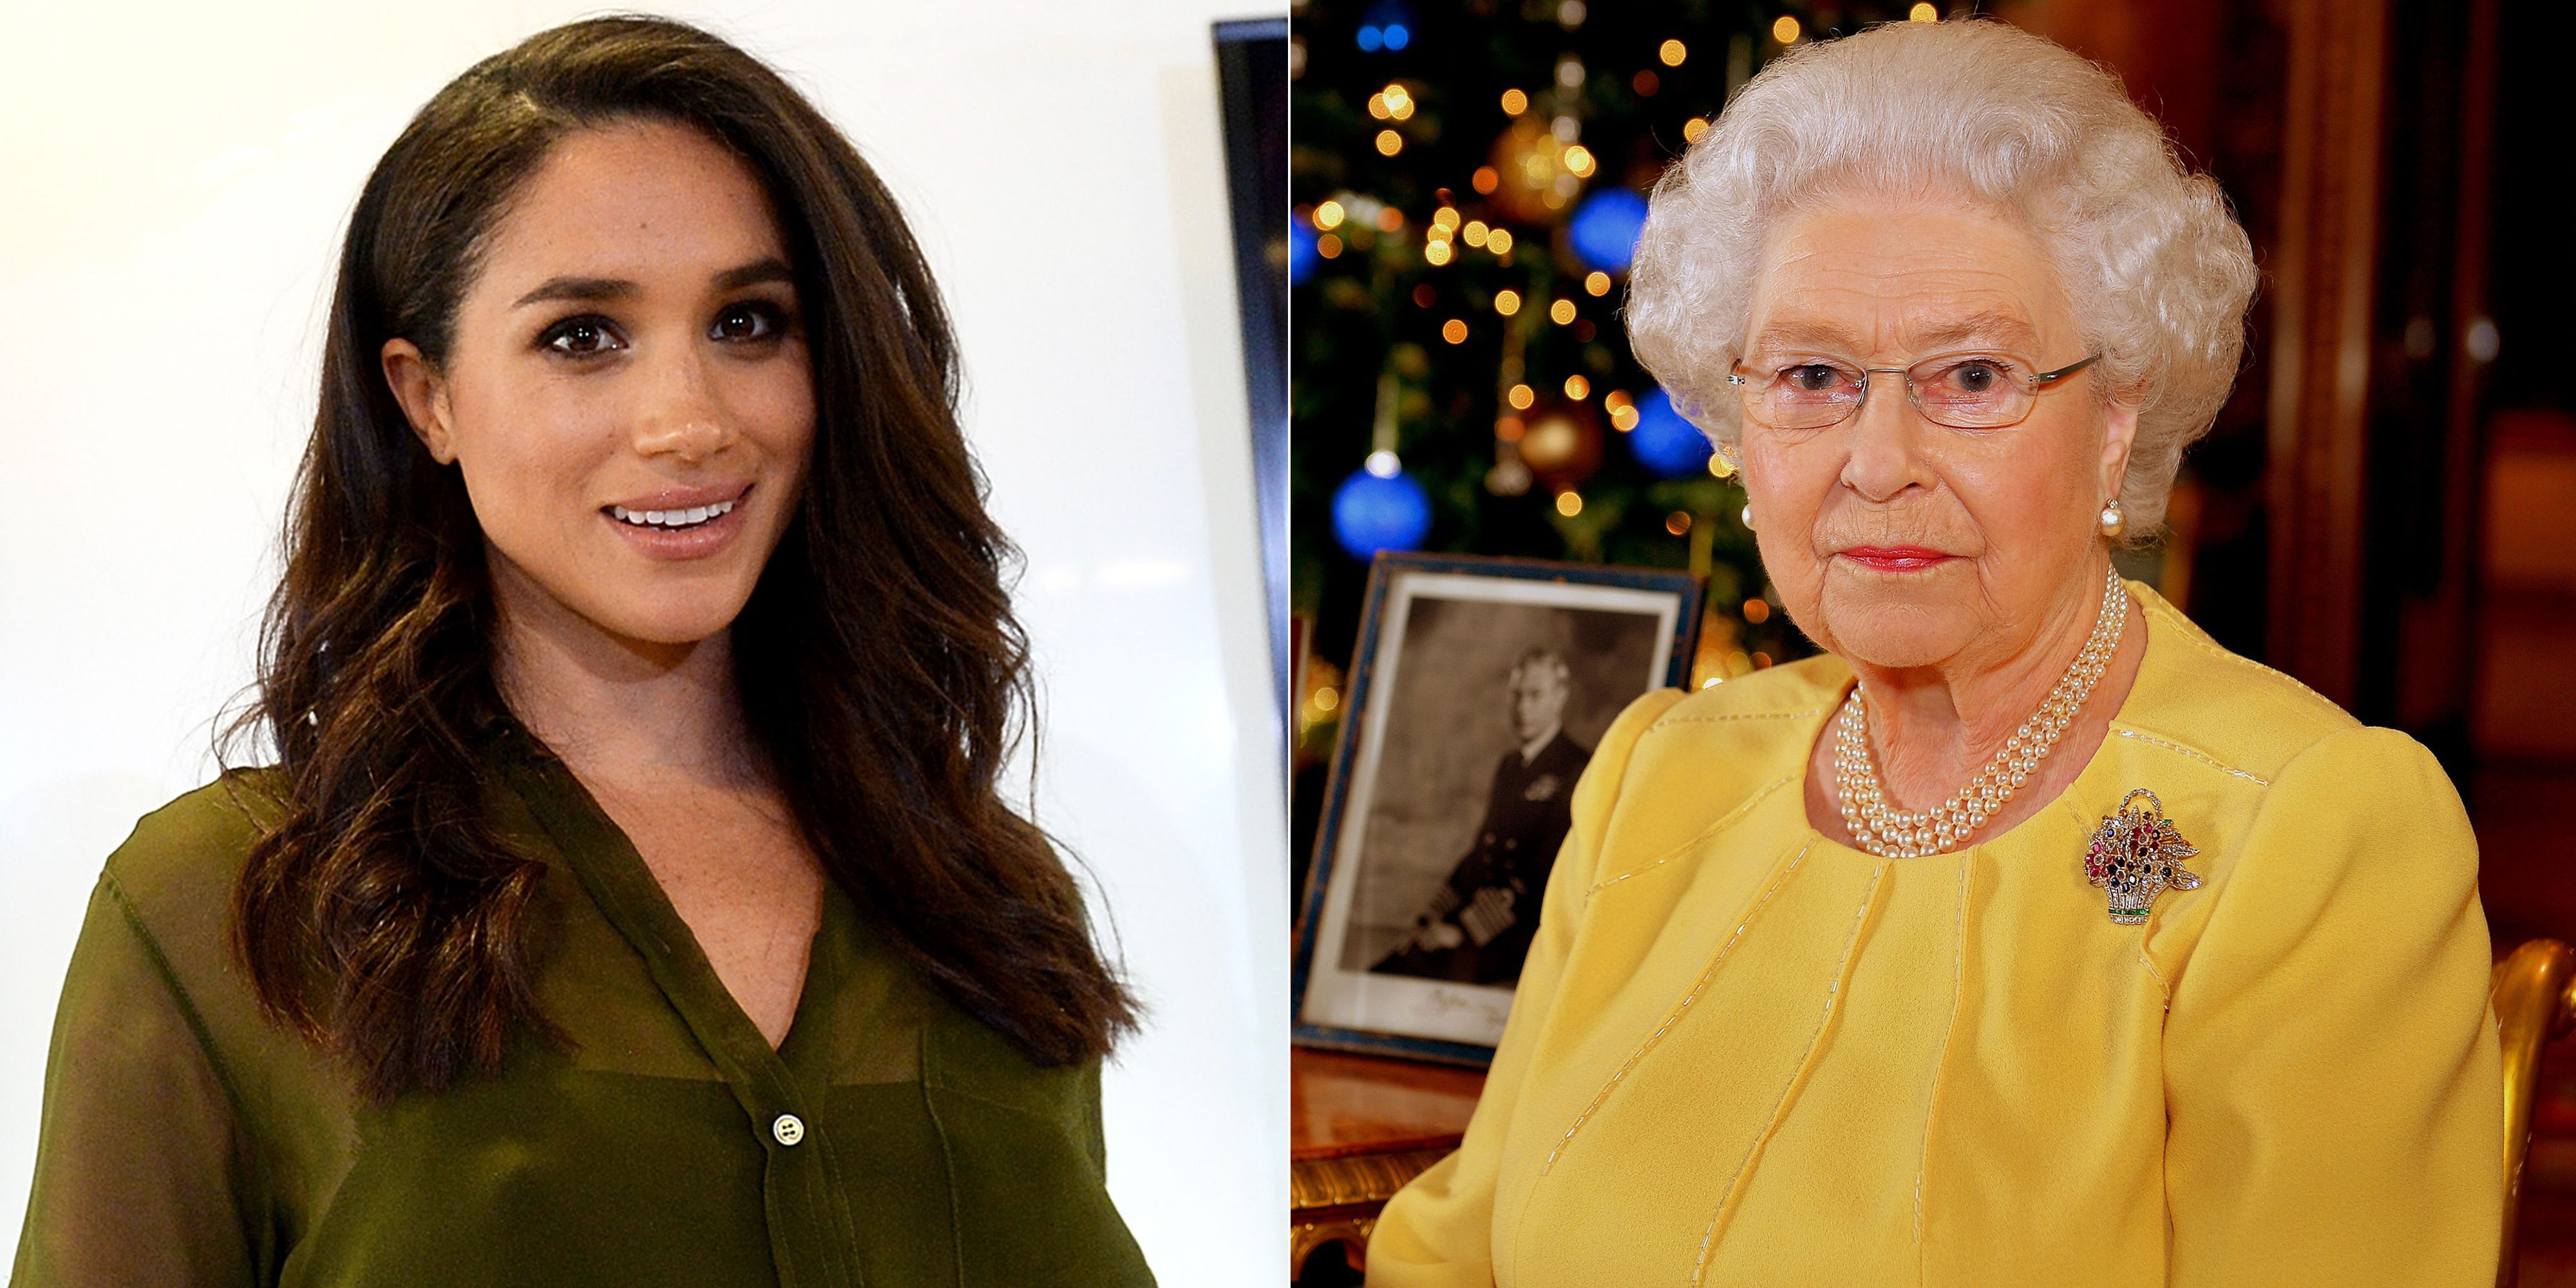 Meghan Markle to spend Christmas with the Queen at Sandringham